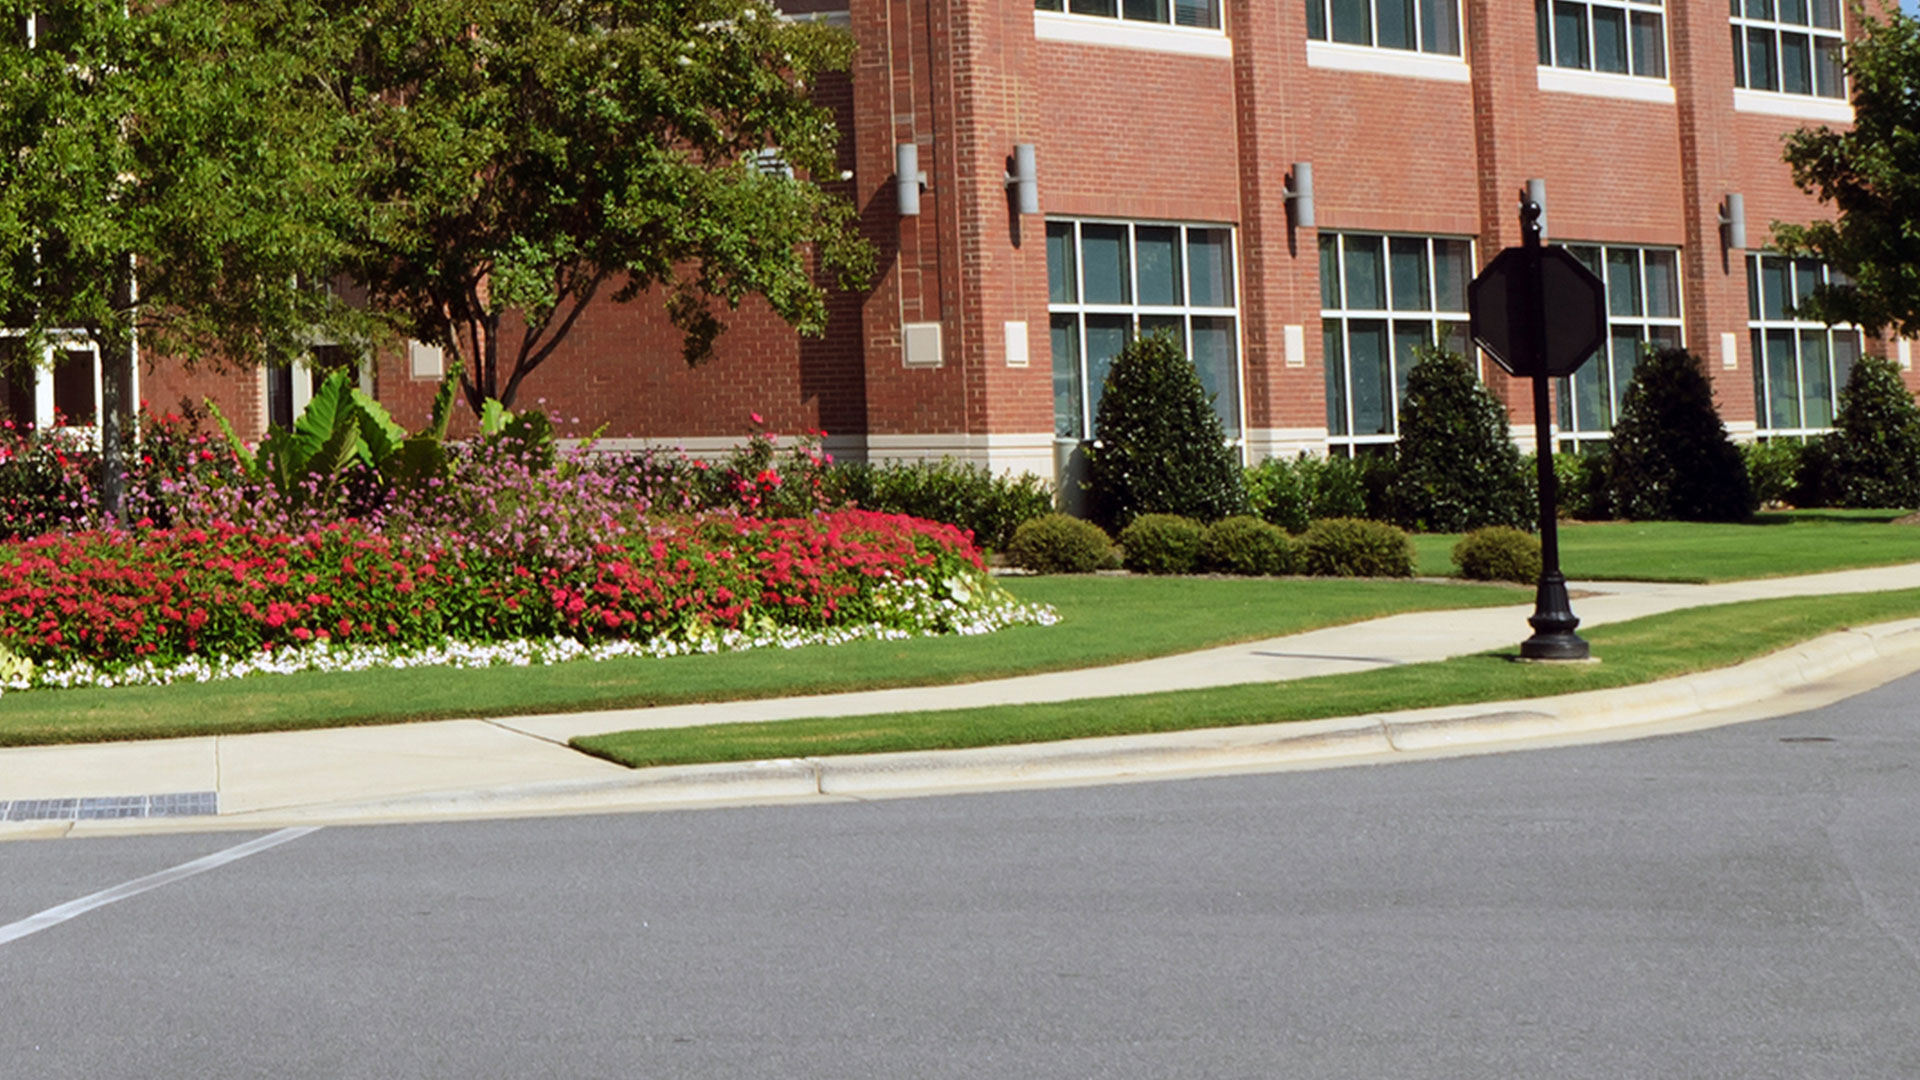 A commercial property in Atlanta that we do regular lawn and landscape maintenance.